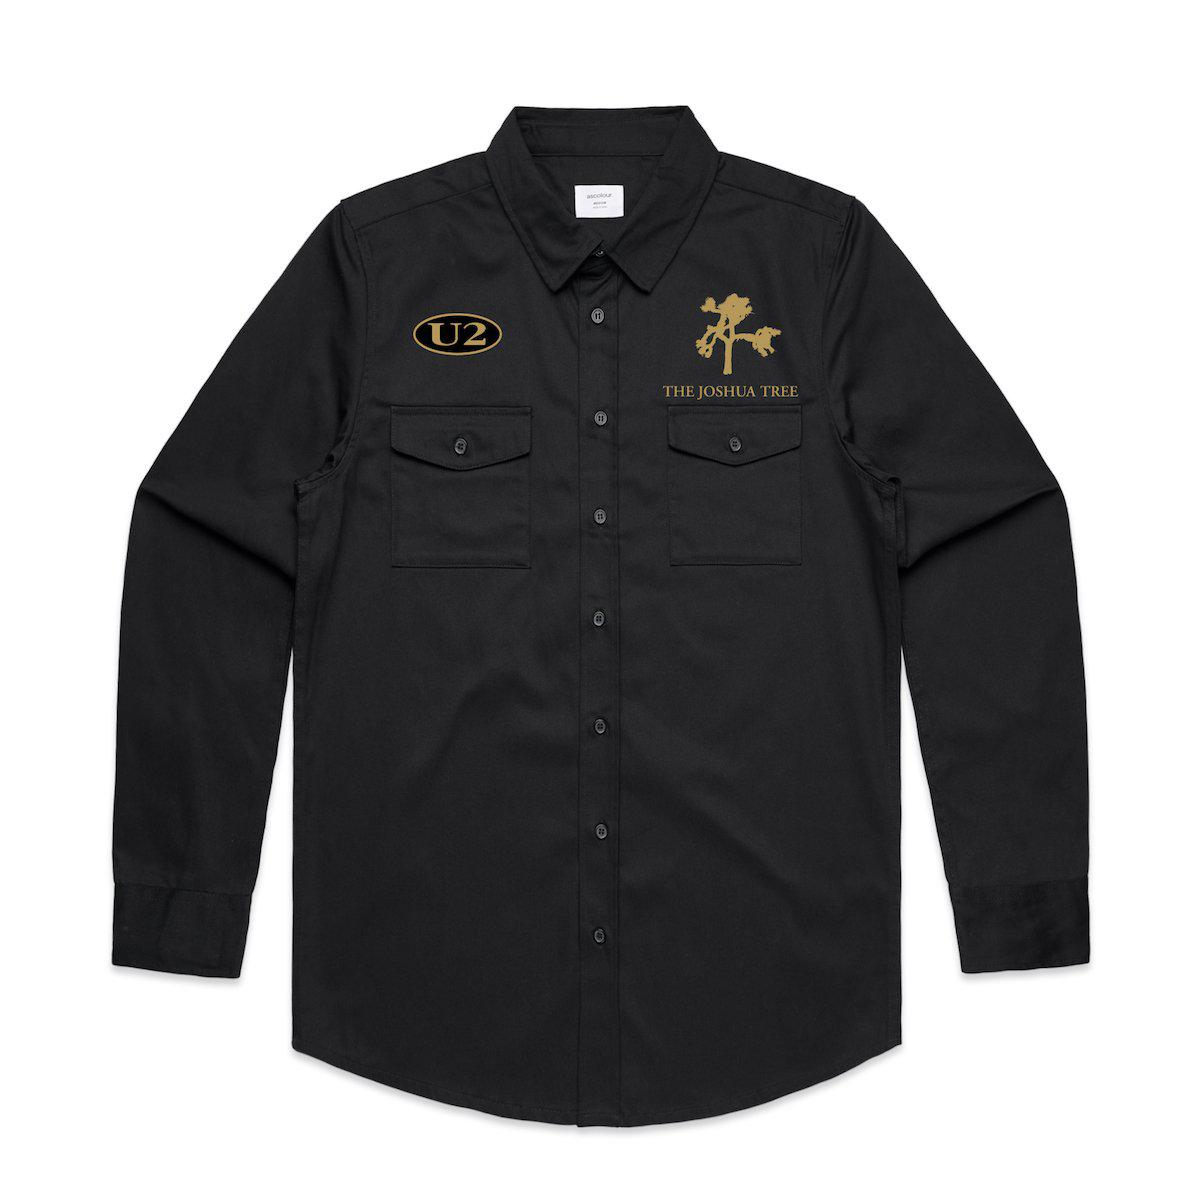 Joshua Tree Military Style Shirt-U2